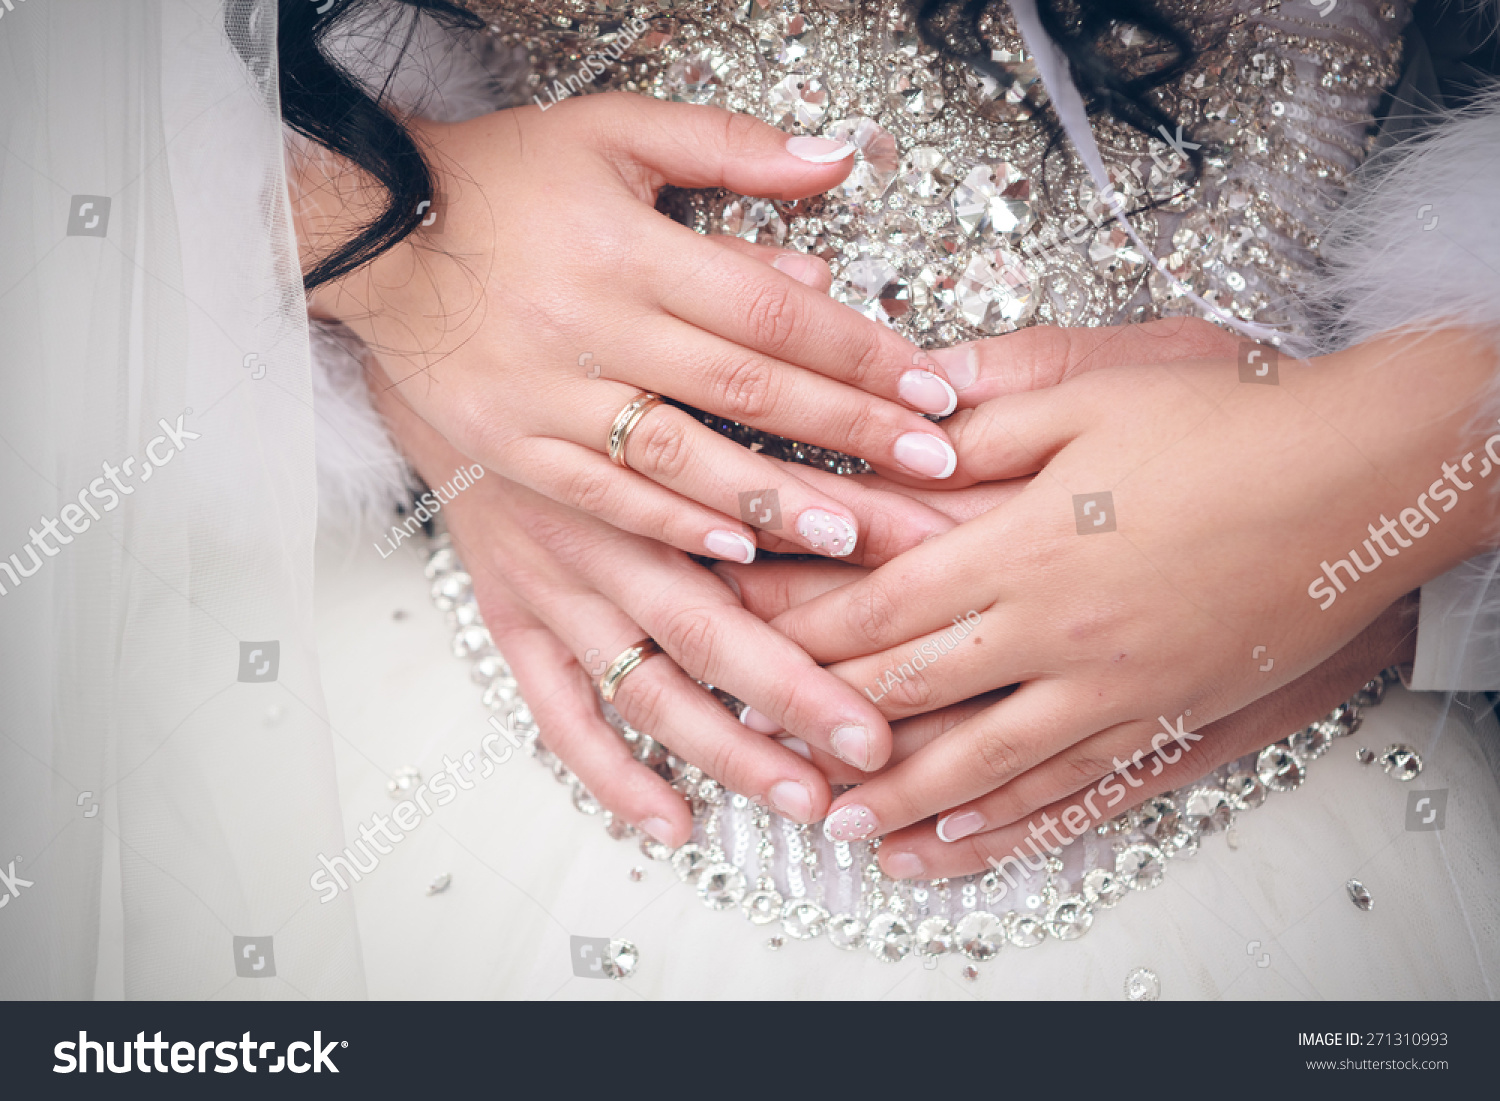 Wedding Ring Exchange Stock Photo (Safe to Use) 271310993 - Shutterstock